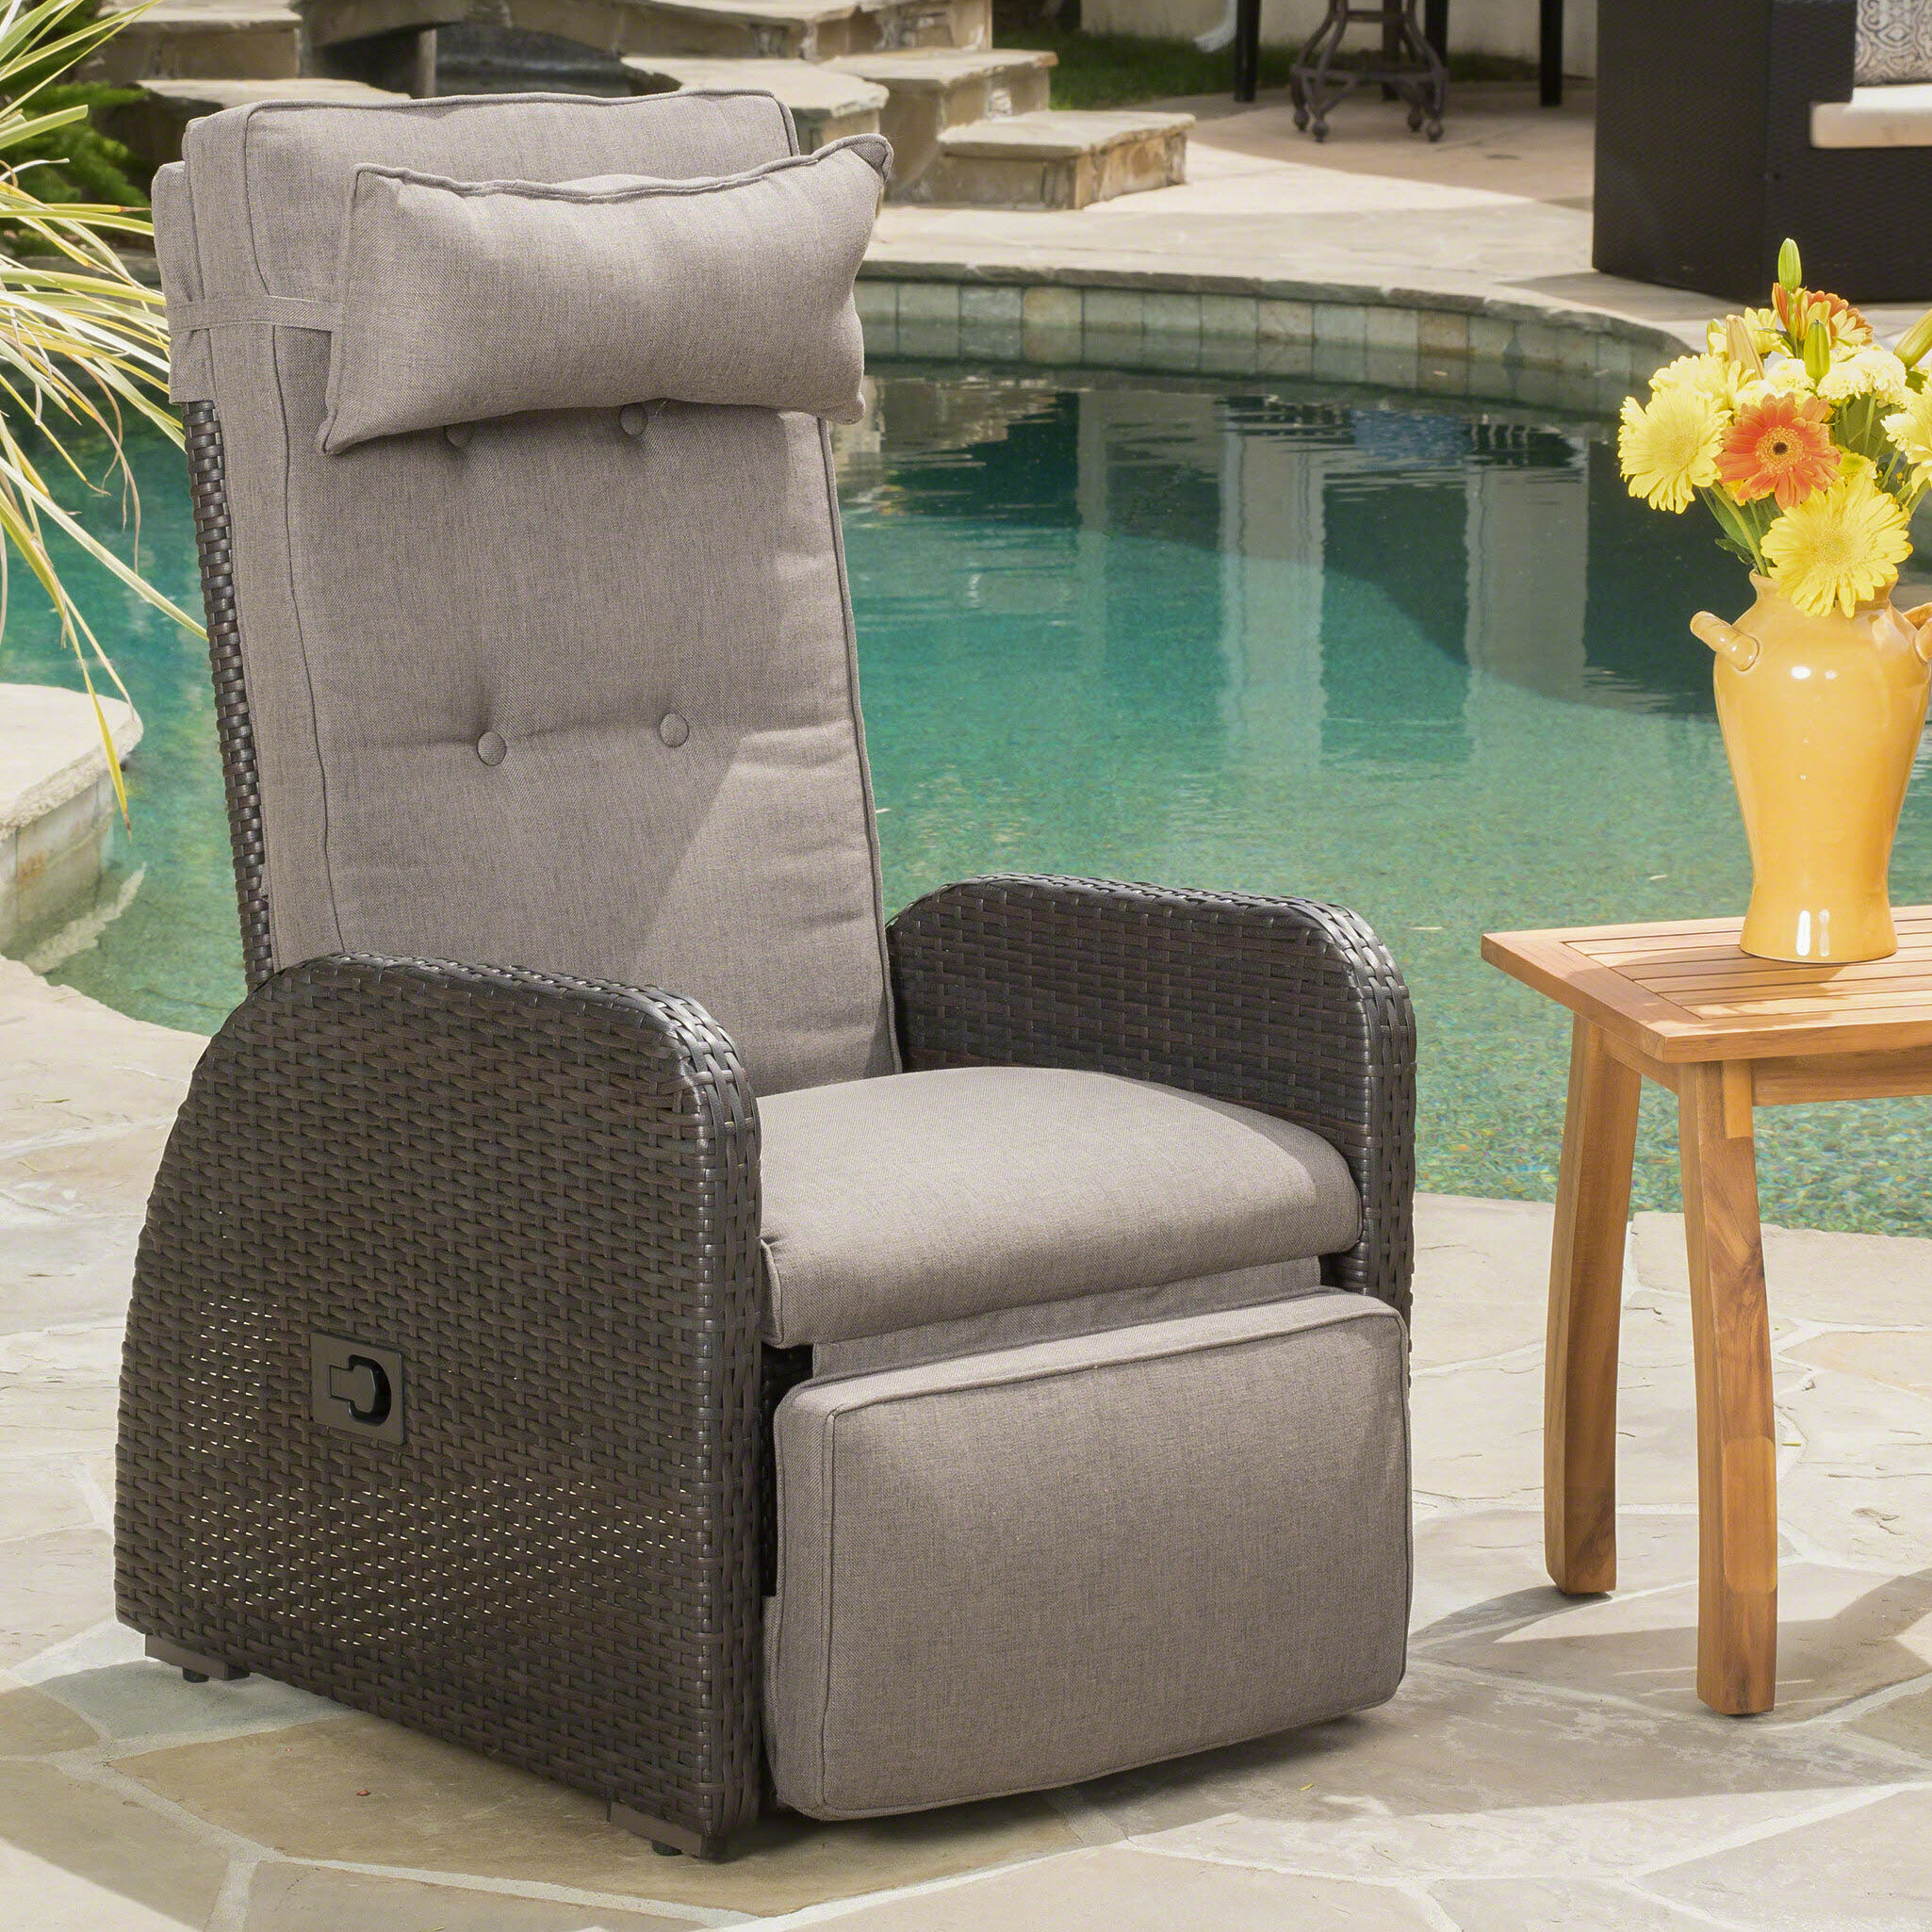 Cool Darby Home Co Keenes Recliner Patio Chair With Cushion Pabps2019 Chair Design Images Pabps2019Com